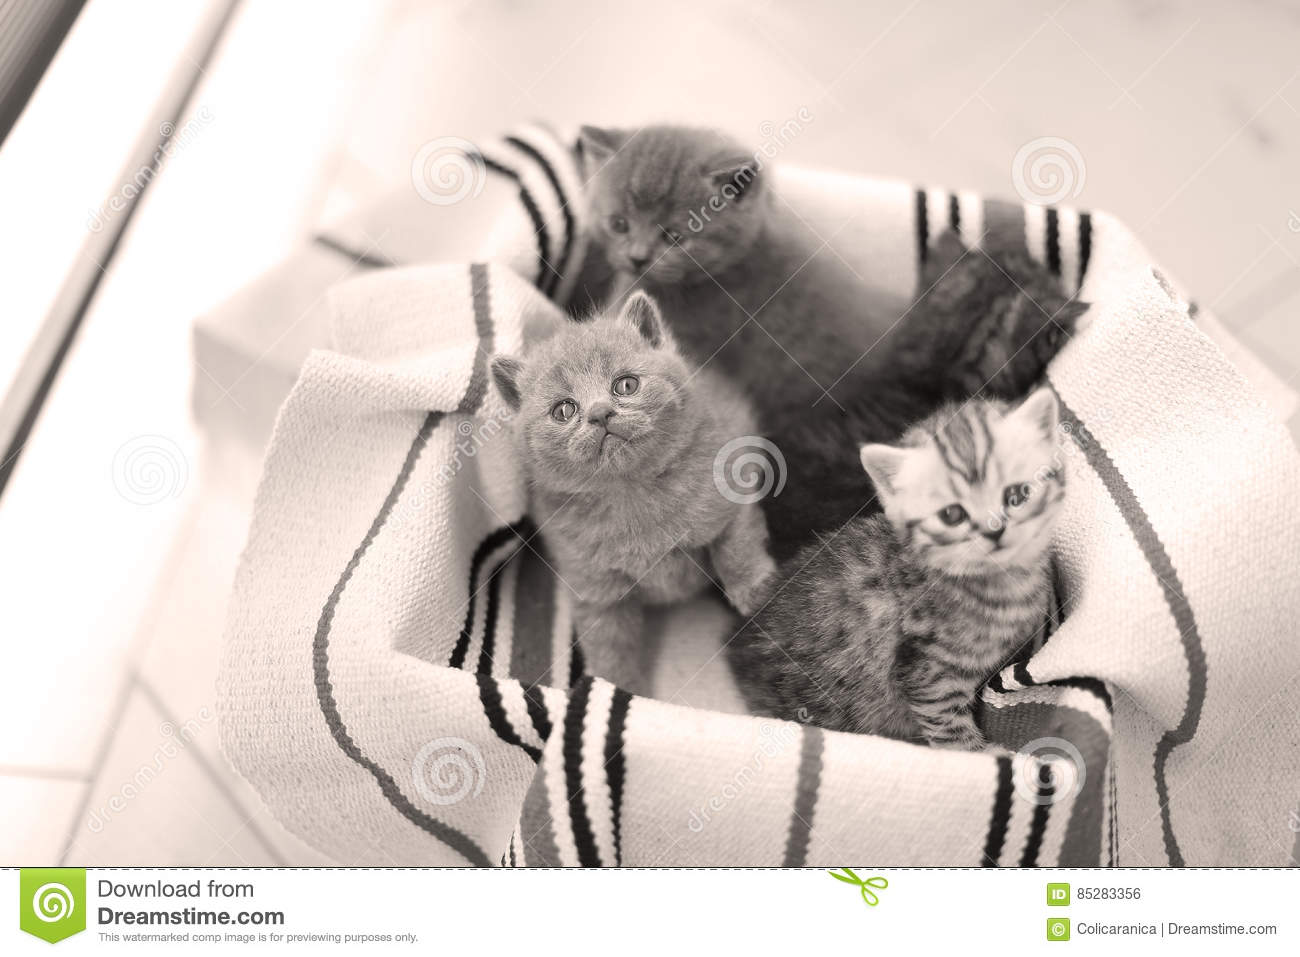 Cute face, newly born kittens meowing